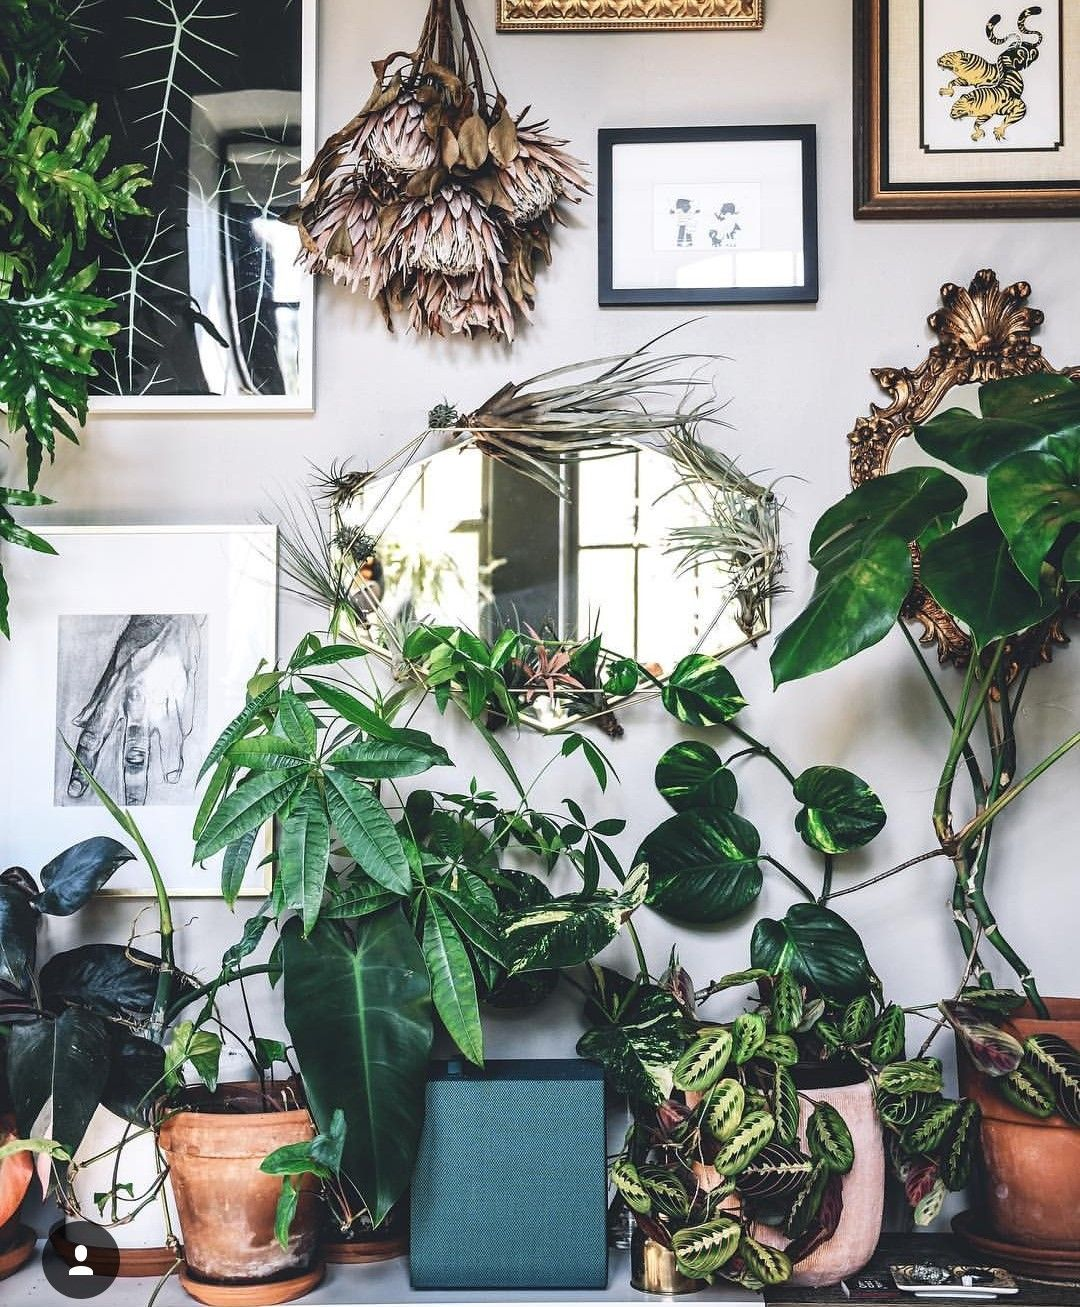 Pin By Emily Schwartz On Home House Plants Decor Mexican Home Decor House Plants Indoor